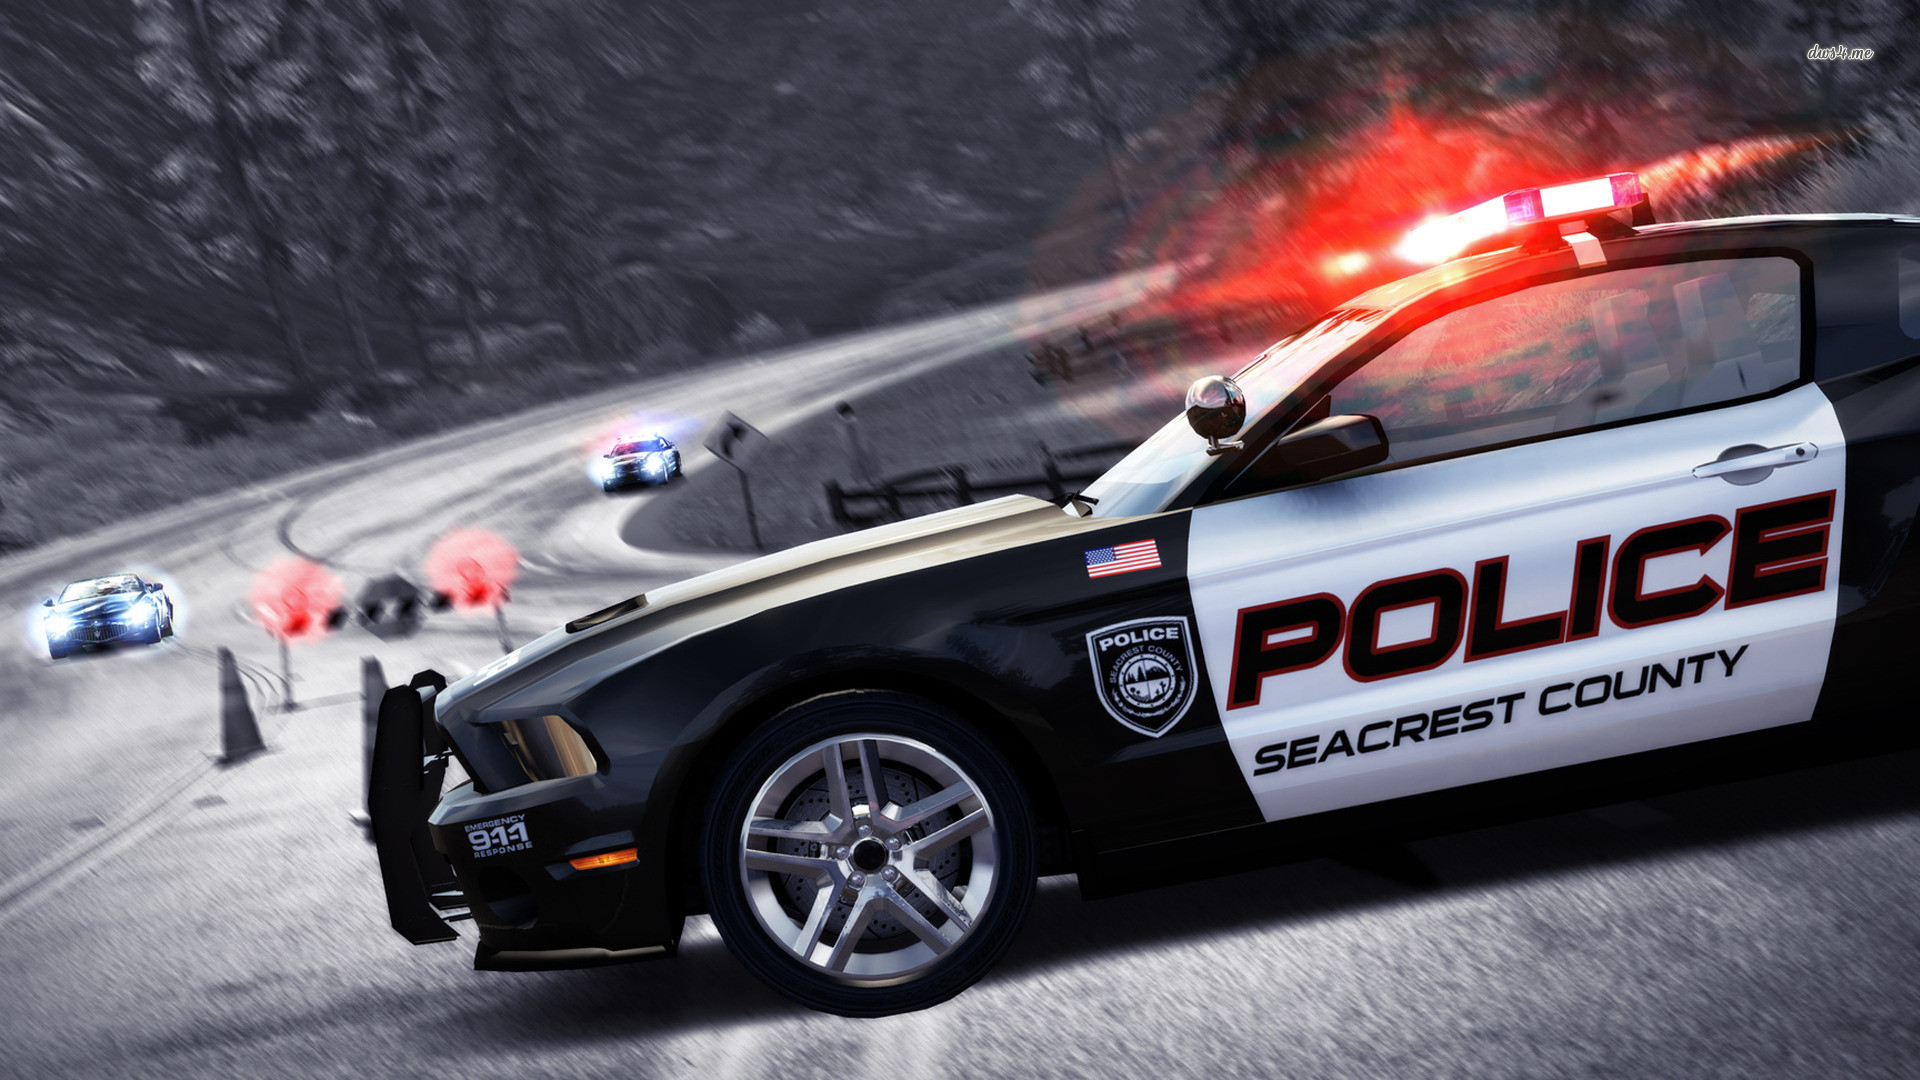 Police Car Wallpapers 70 Images